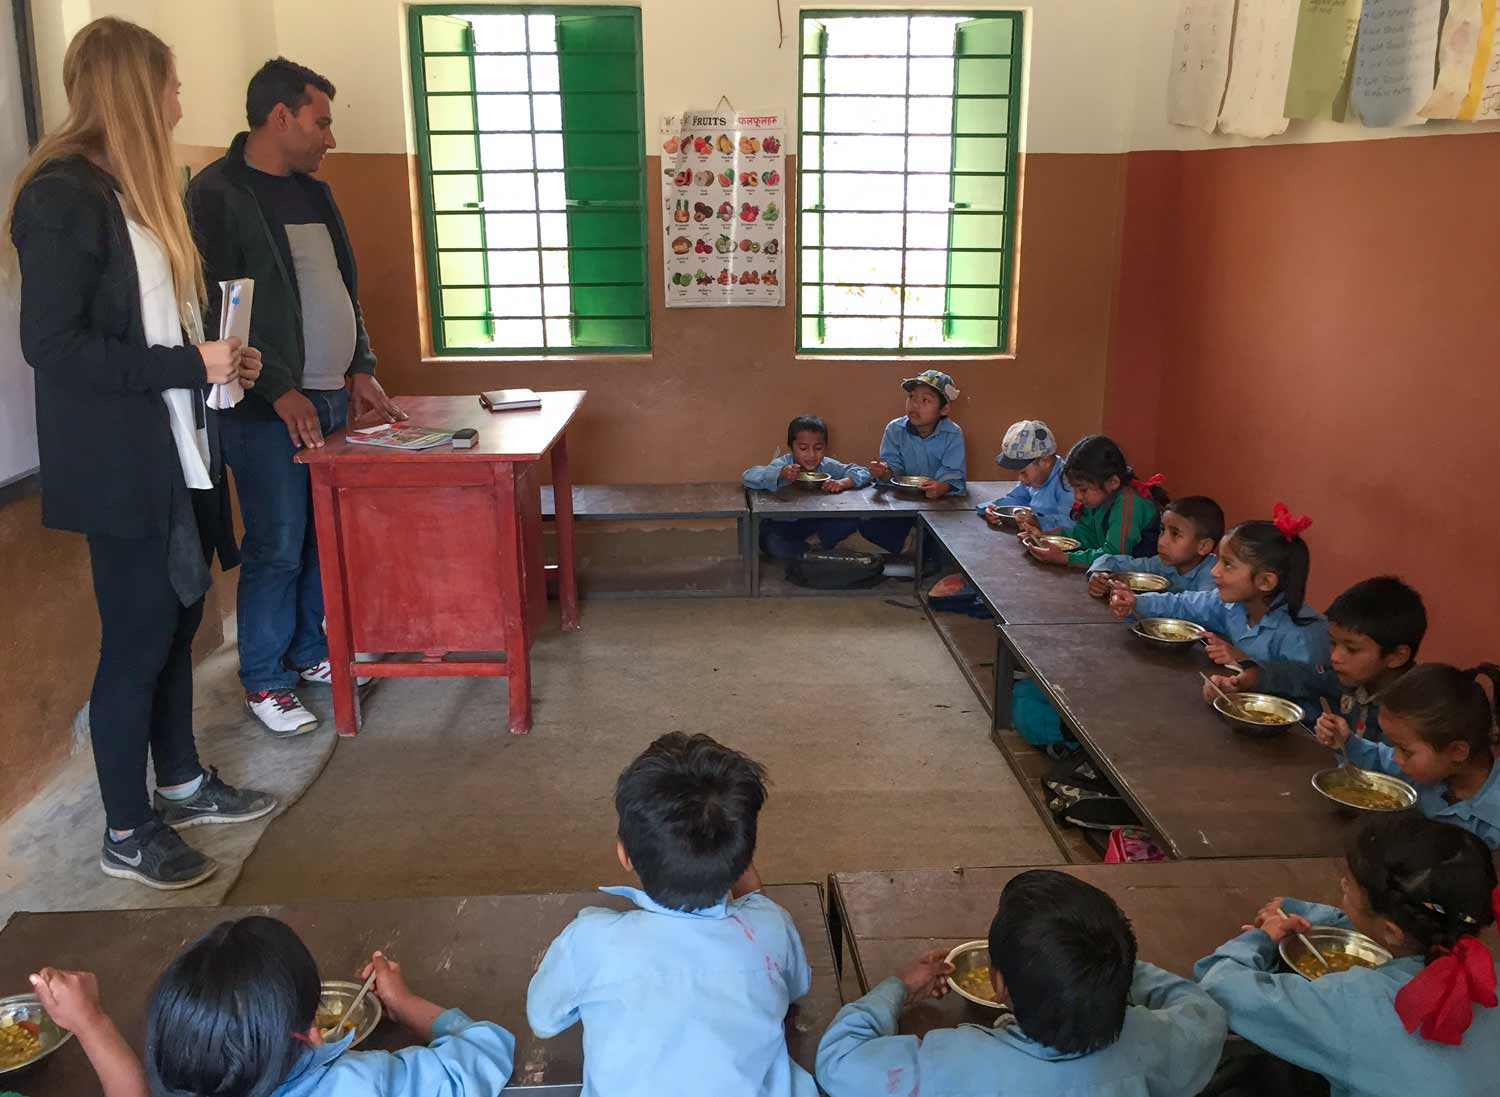 In Nepal over spring break, Althea Pickering visited schools to evaluate the country's School Health Nutrition program.